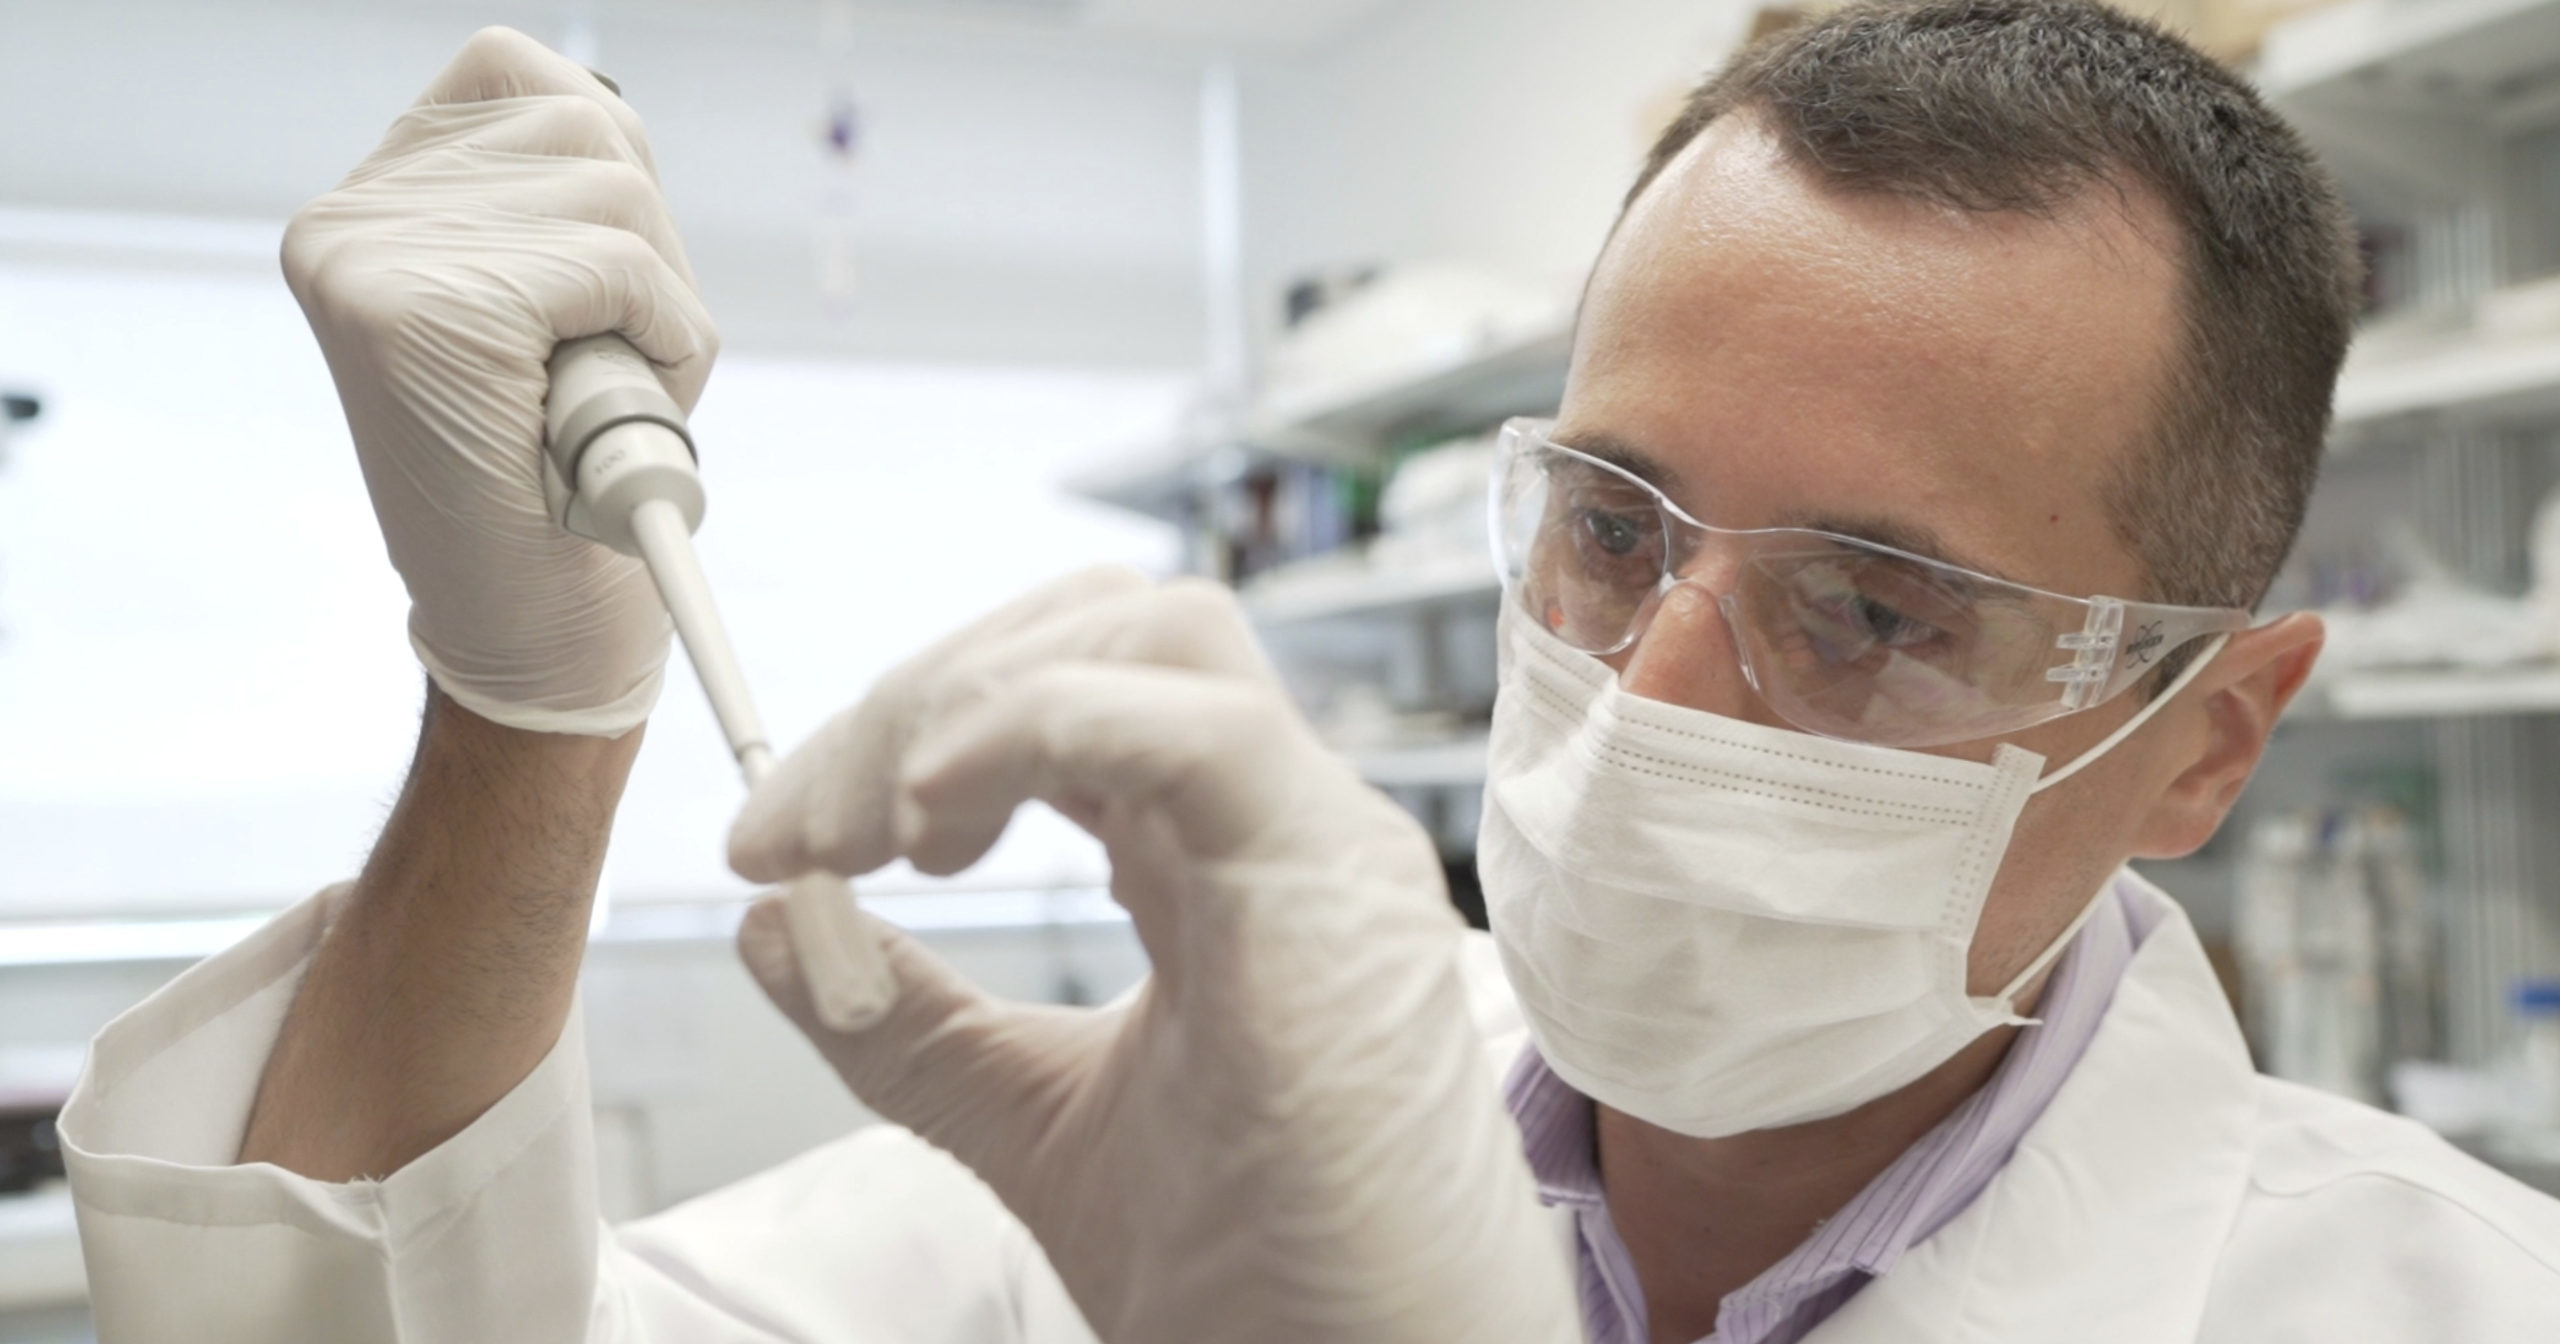 In this image from video provided by Washington University, researcher Nicolas Barthelemy works on a p-tau217 test for Alzheimer's disease at a laboratory in St. Louis, Missouri, on July 27, 2020. Several companies and universities have developed versions of these tests, which look for a form of tau protein, one of the substances that can build up and damage the brains of people with Alzheimer's.